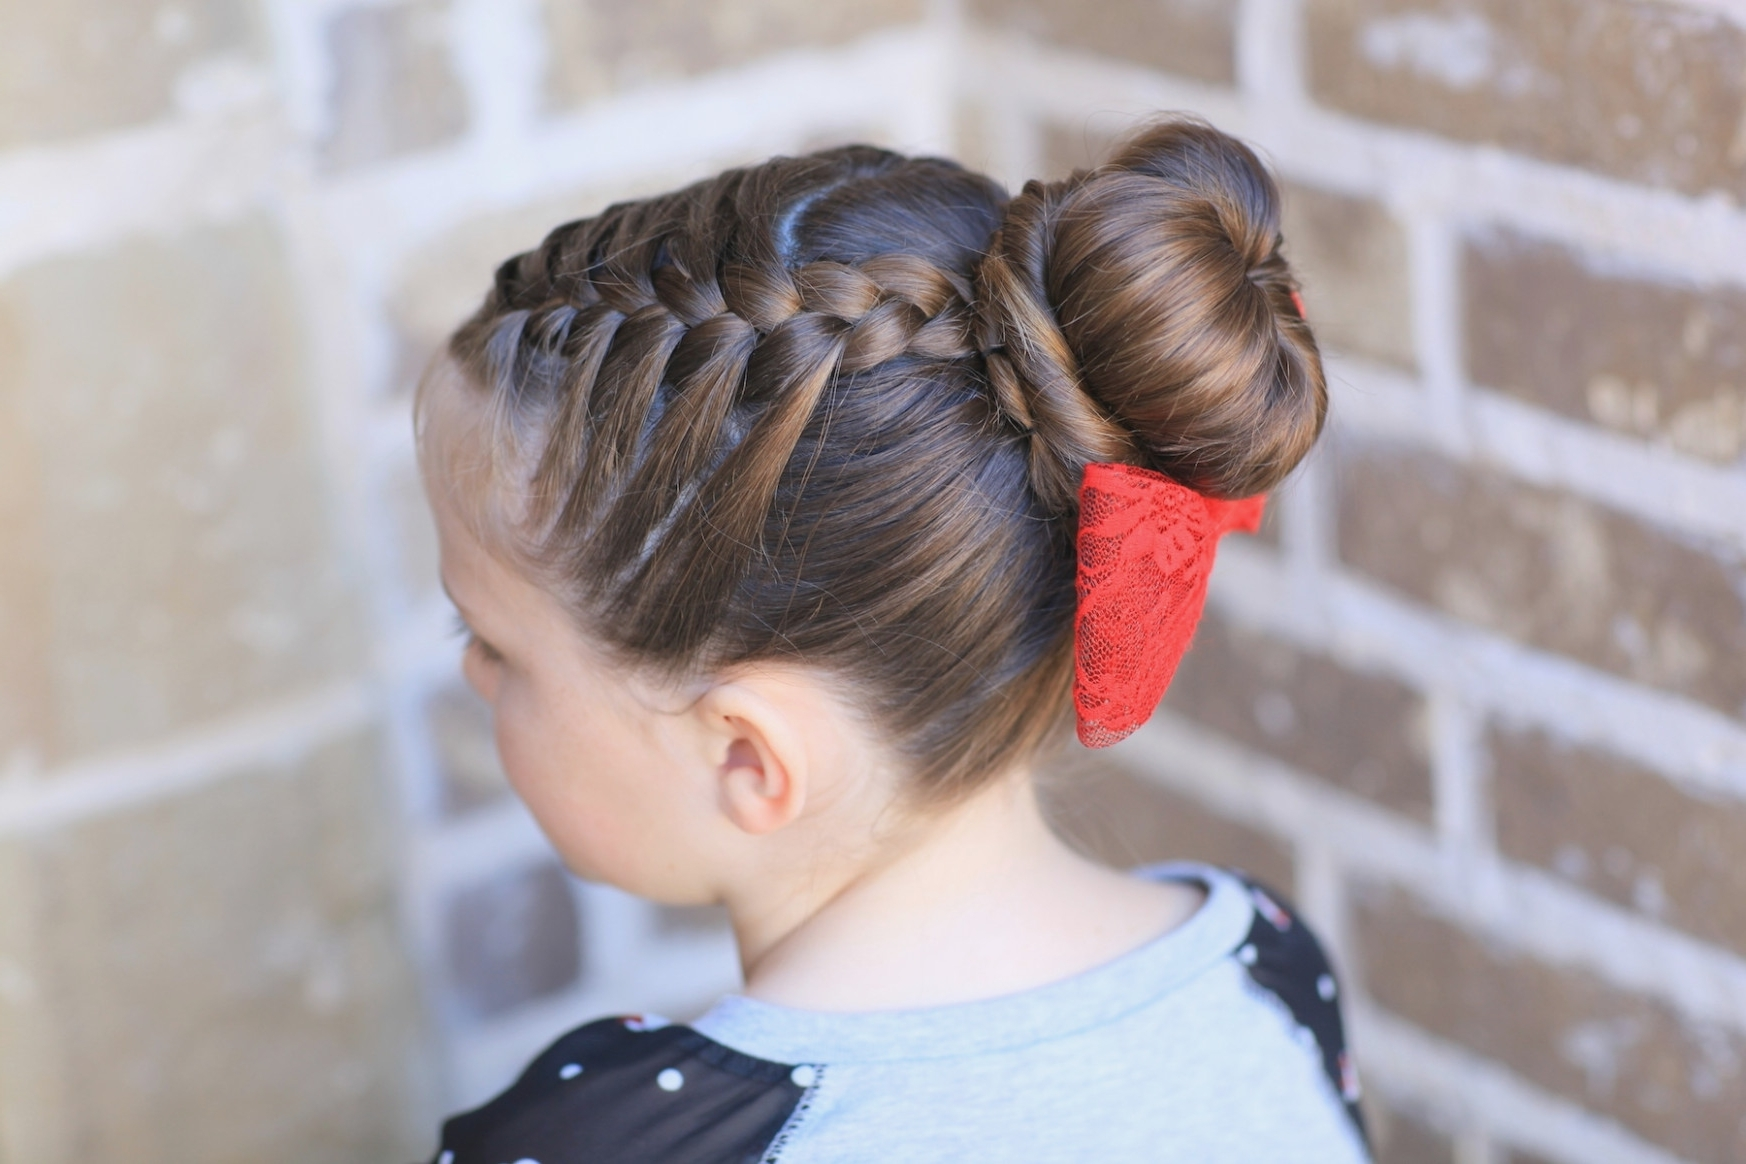 Hairstyles For Gymnastics Beautiful Braided Bun Hairstyles For Short With Regard To Well Liked Braided Gymnastics Hairstyles (View 9 of 15)